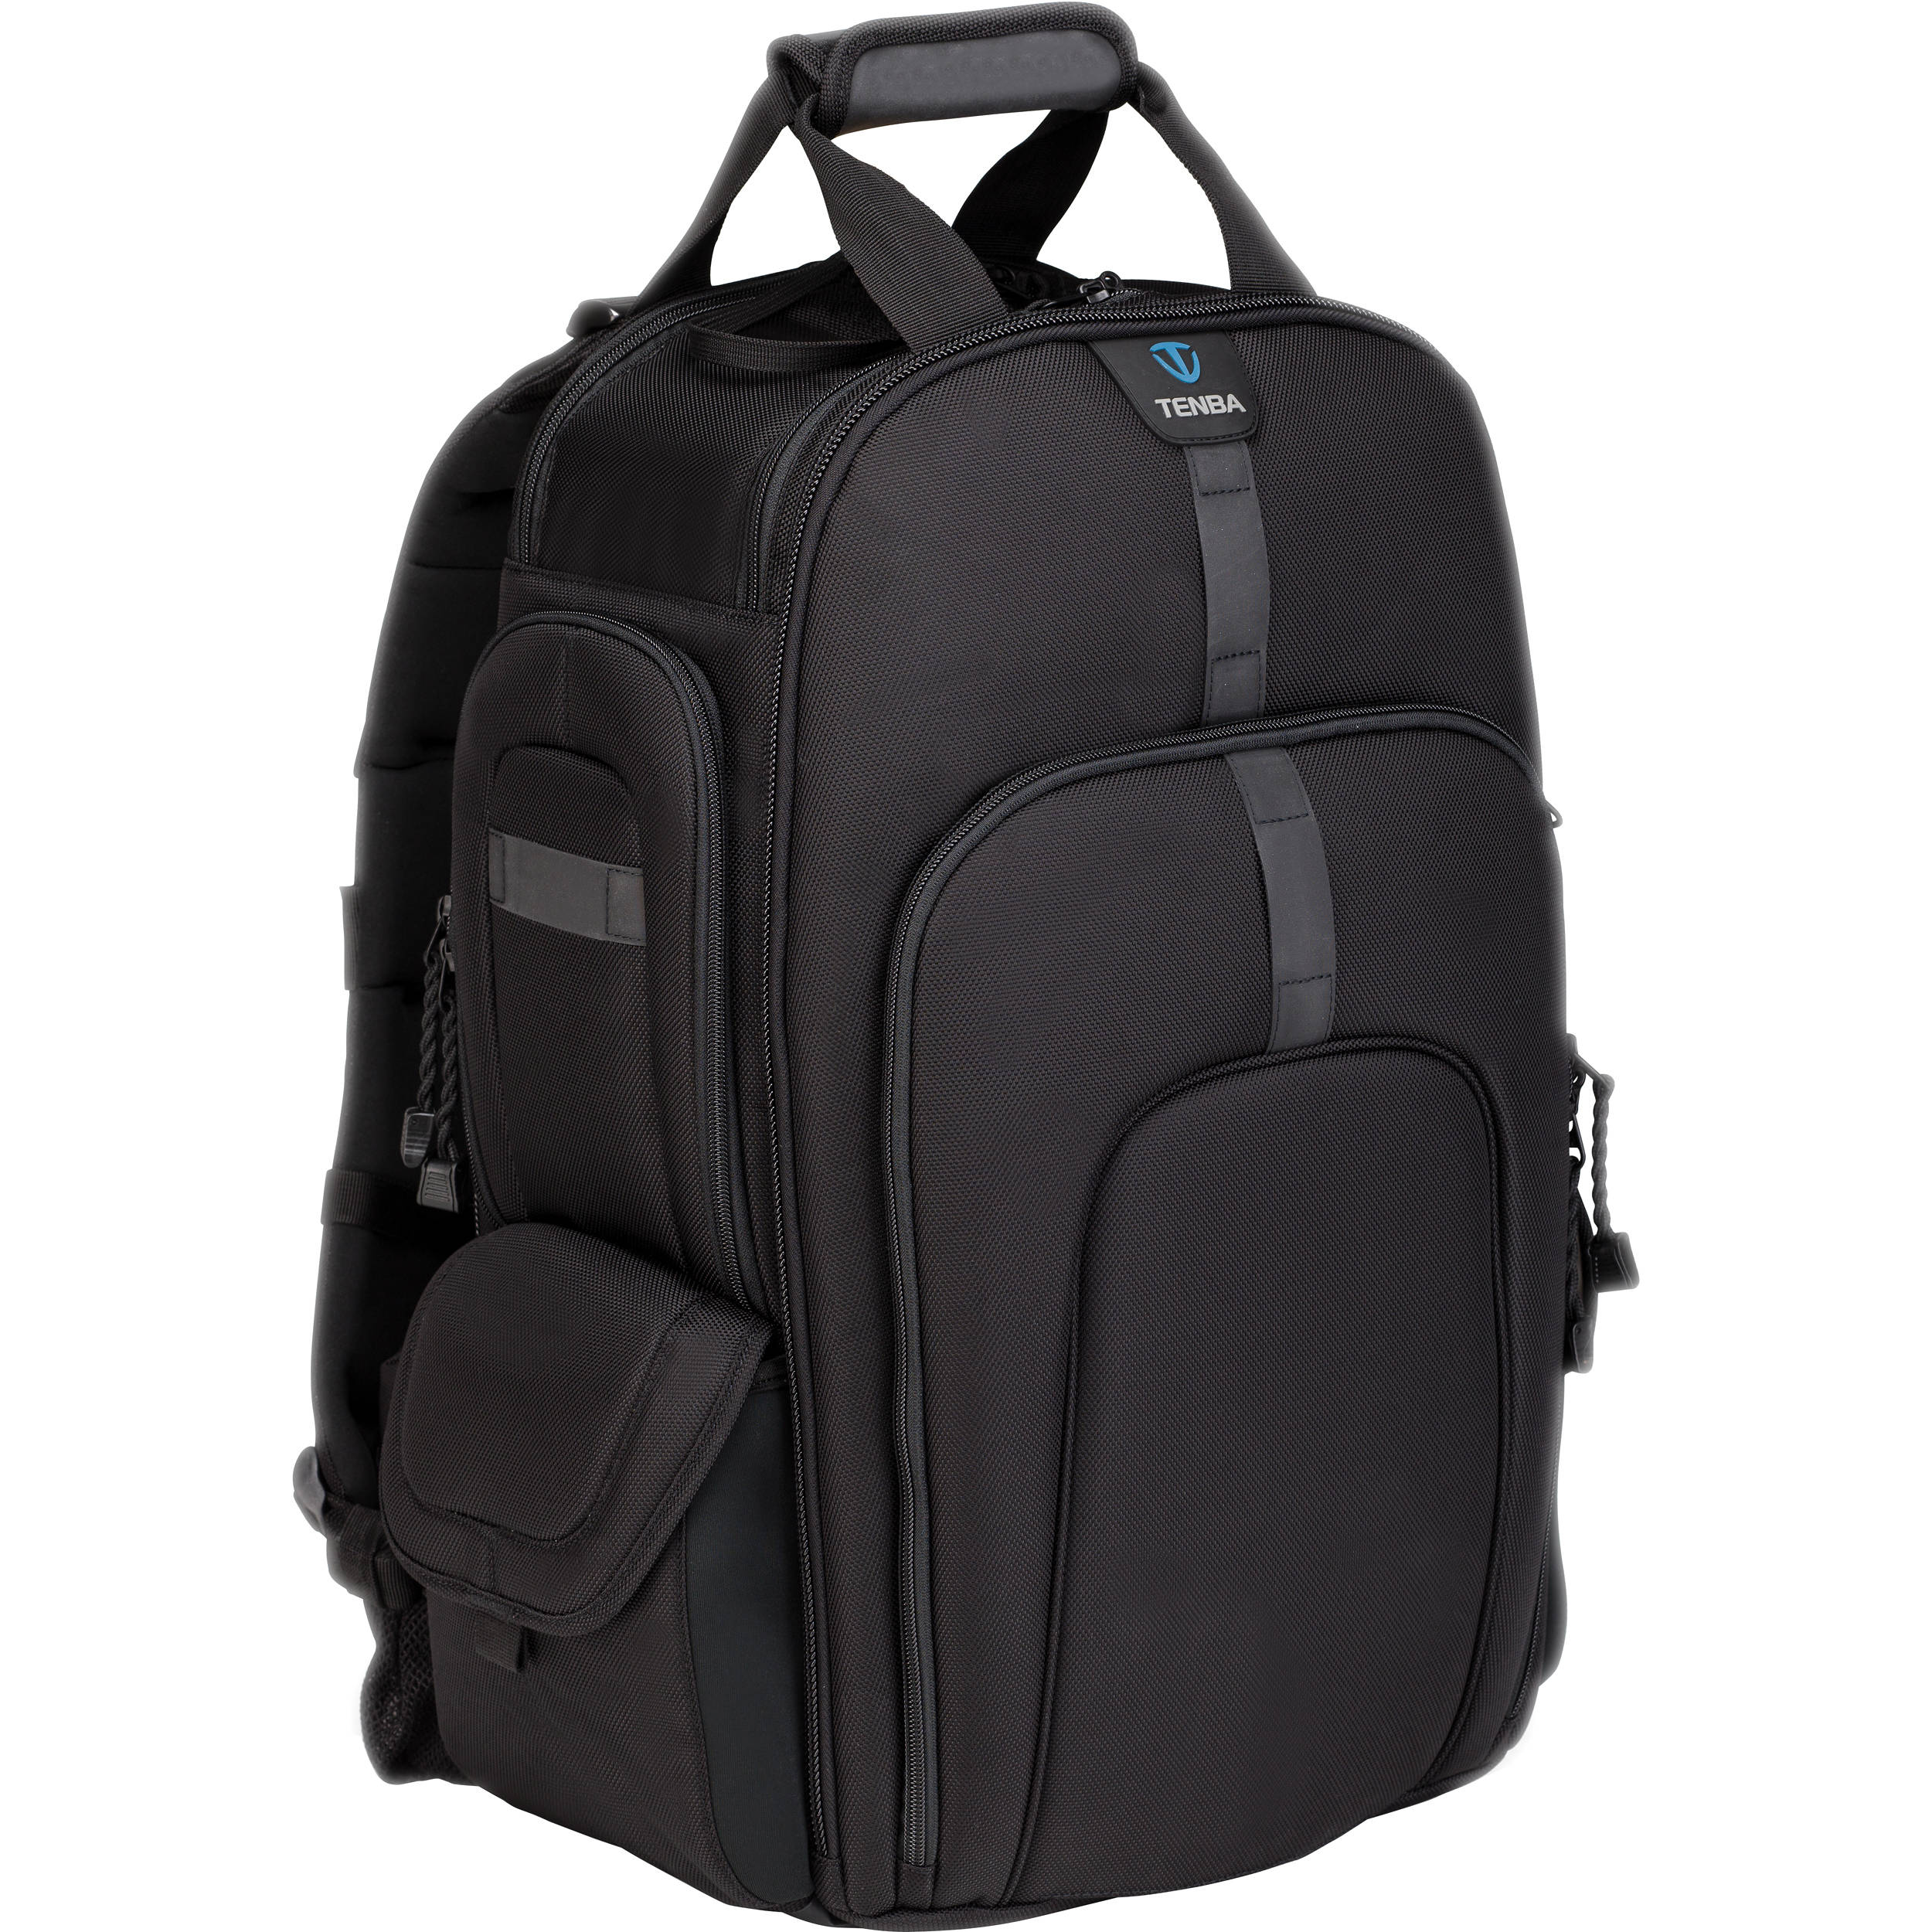 Best Place To Buy A Backpack Kgs88dr3